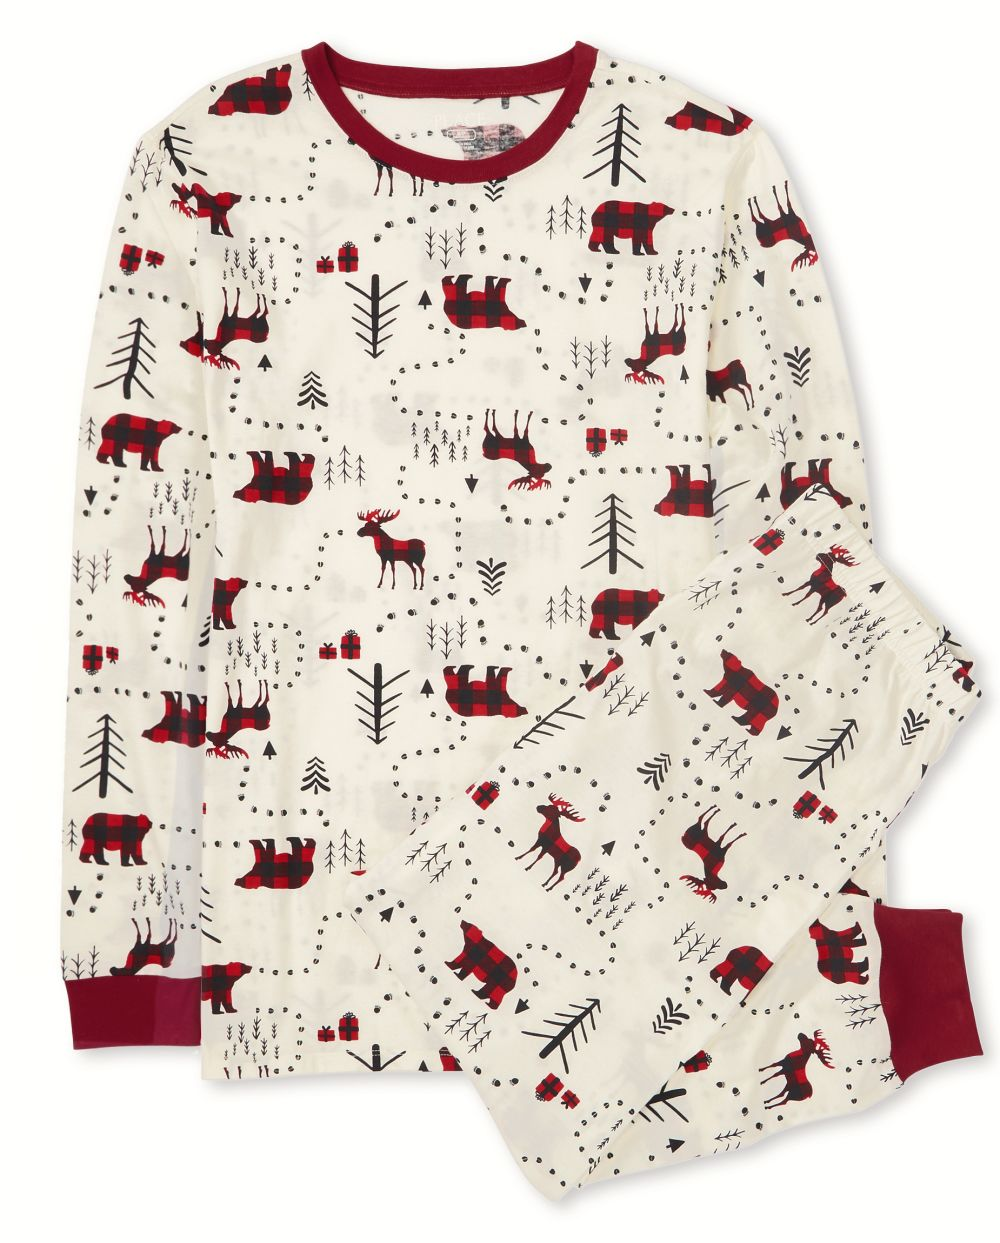 Unisex Adult Matching Family Winter Forest Cotton Pajamas